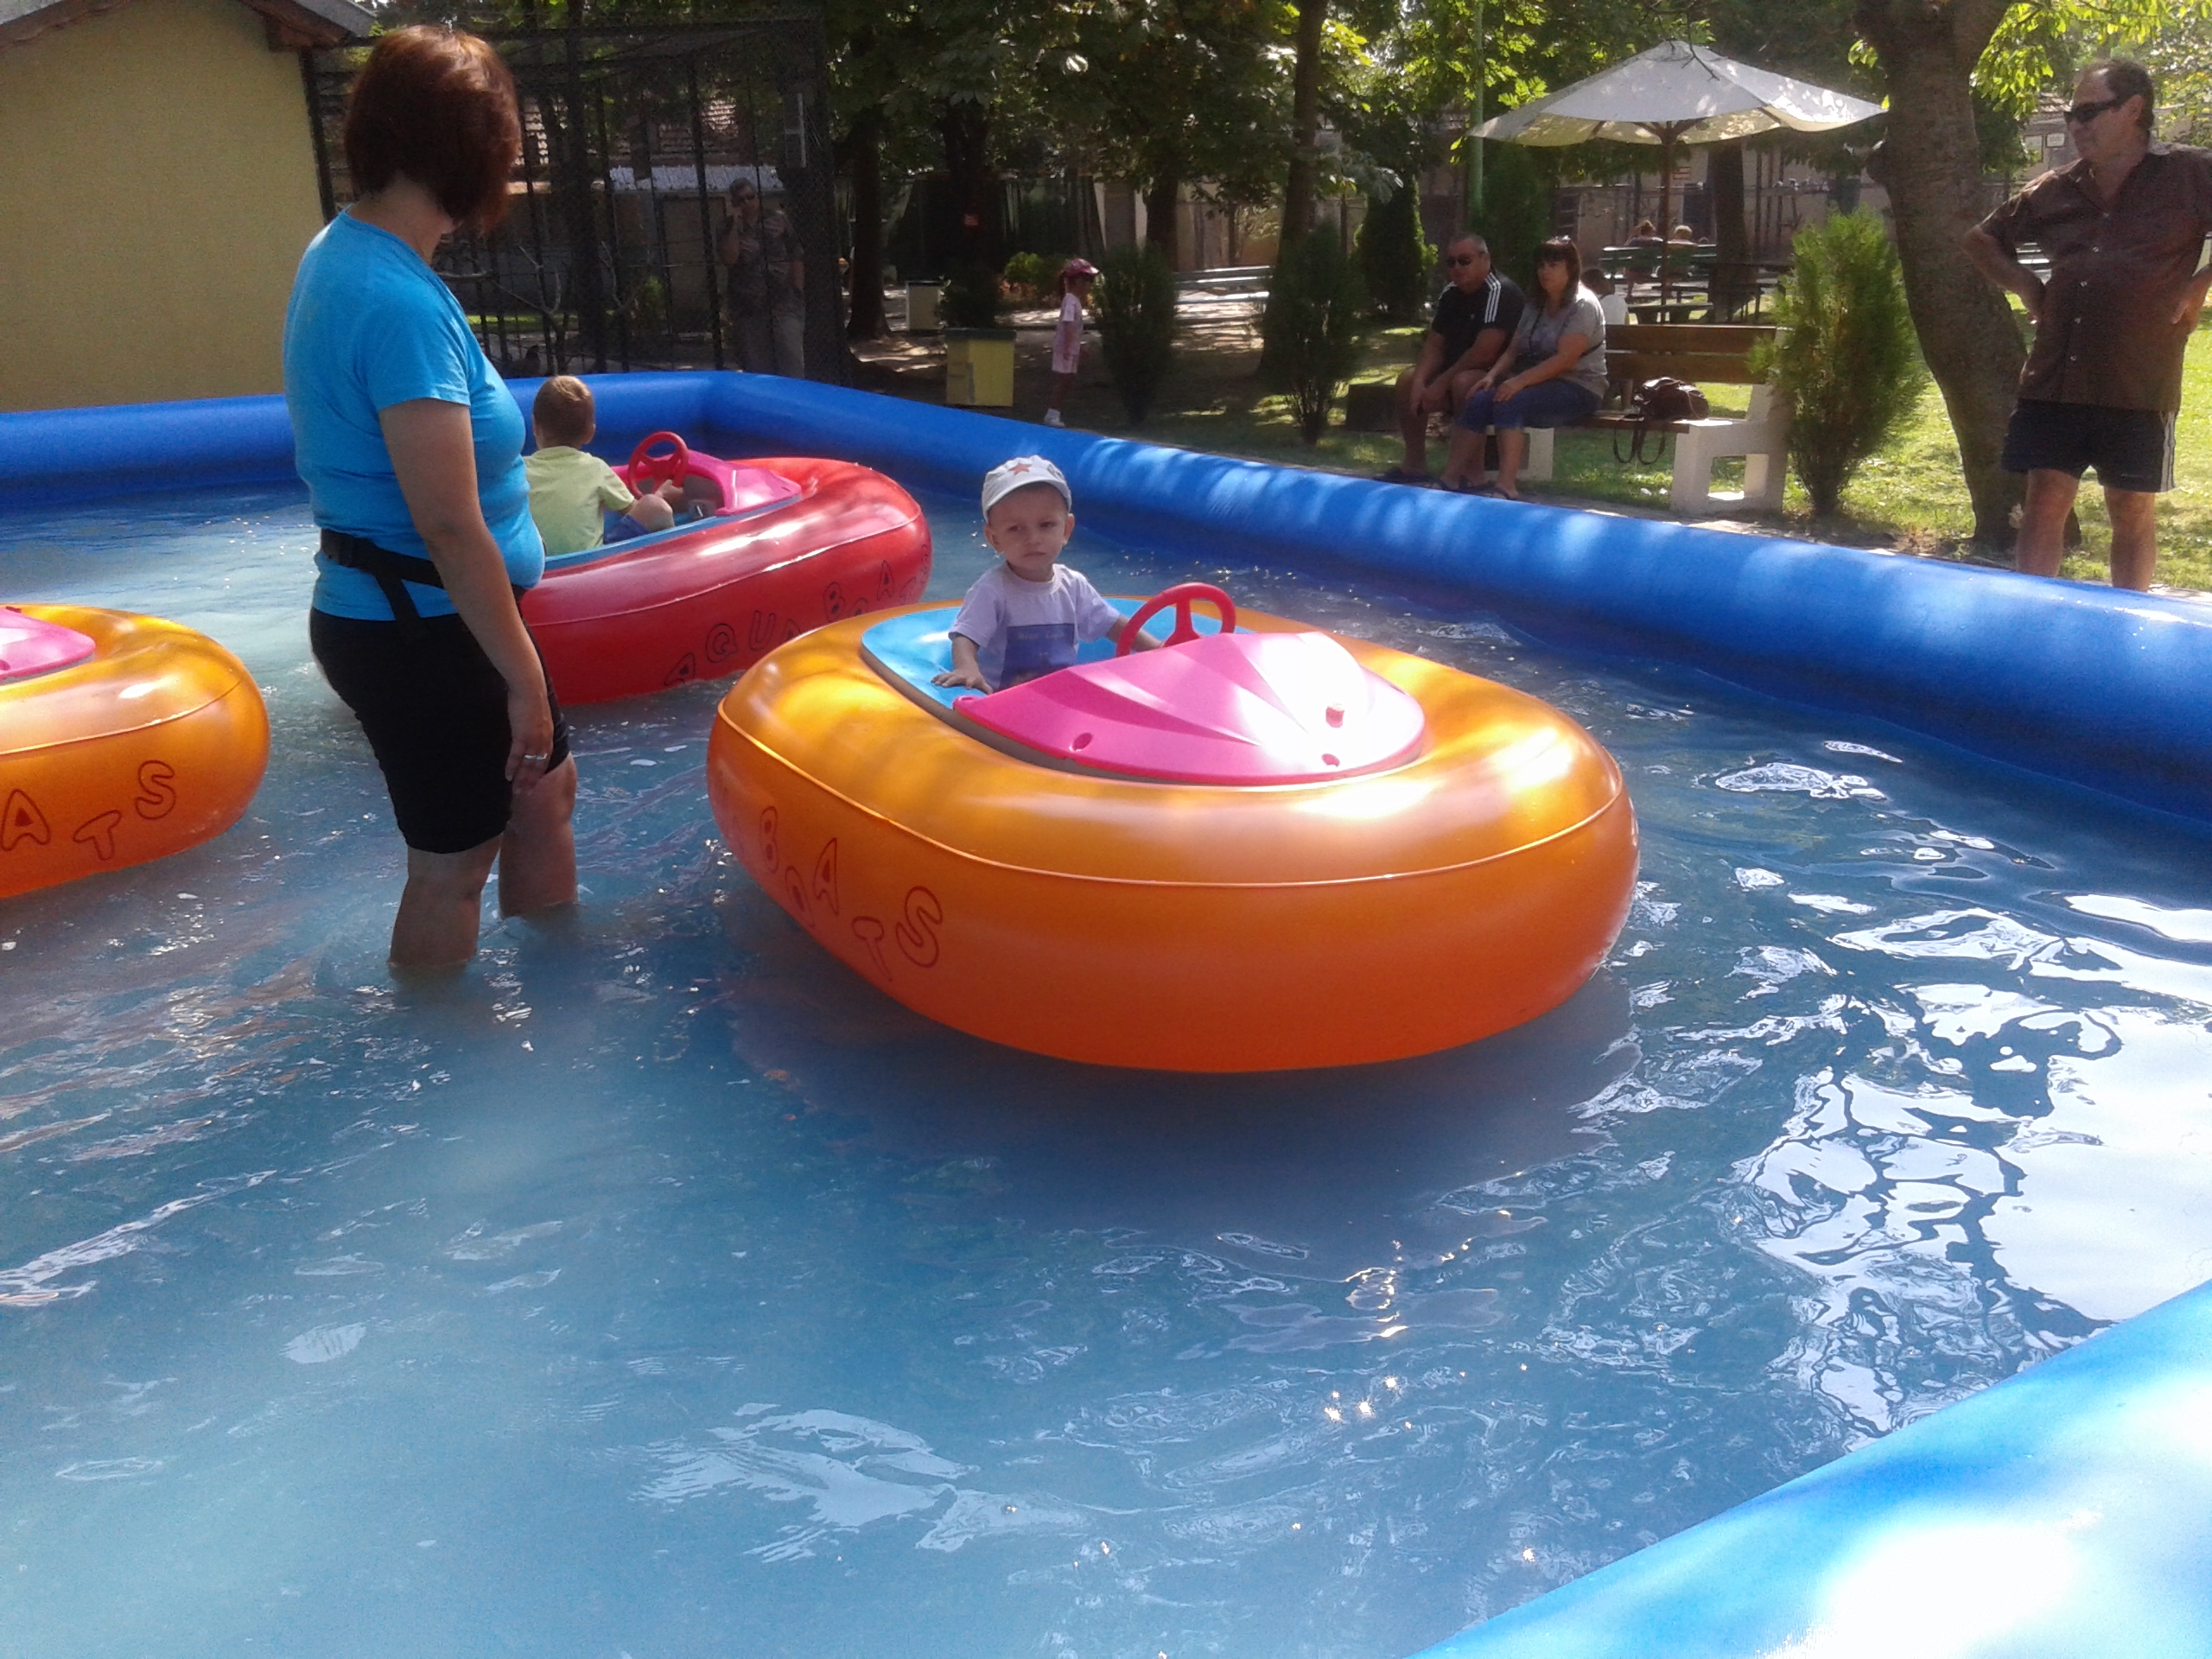 Inflatable pool for water ball or bumper boats waterball zorb electric boat bumper boat - Inflatable pool ...